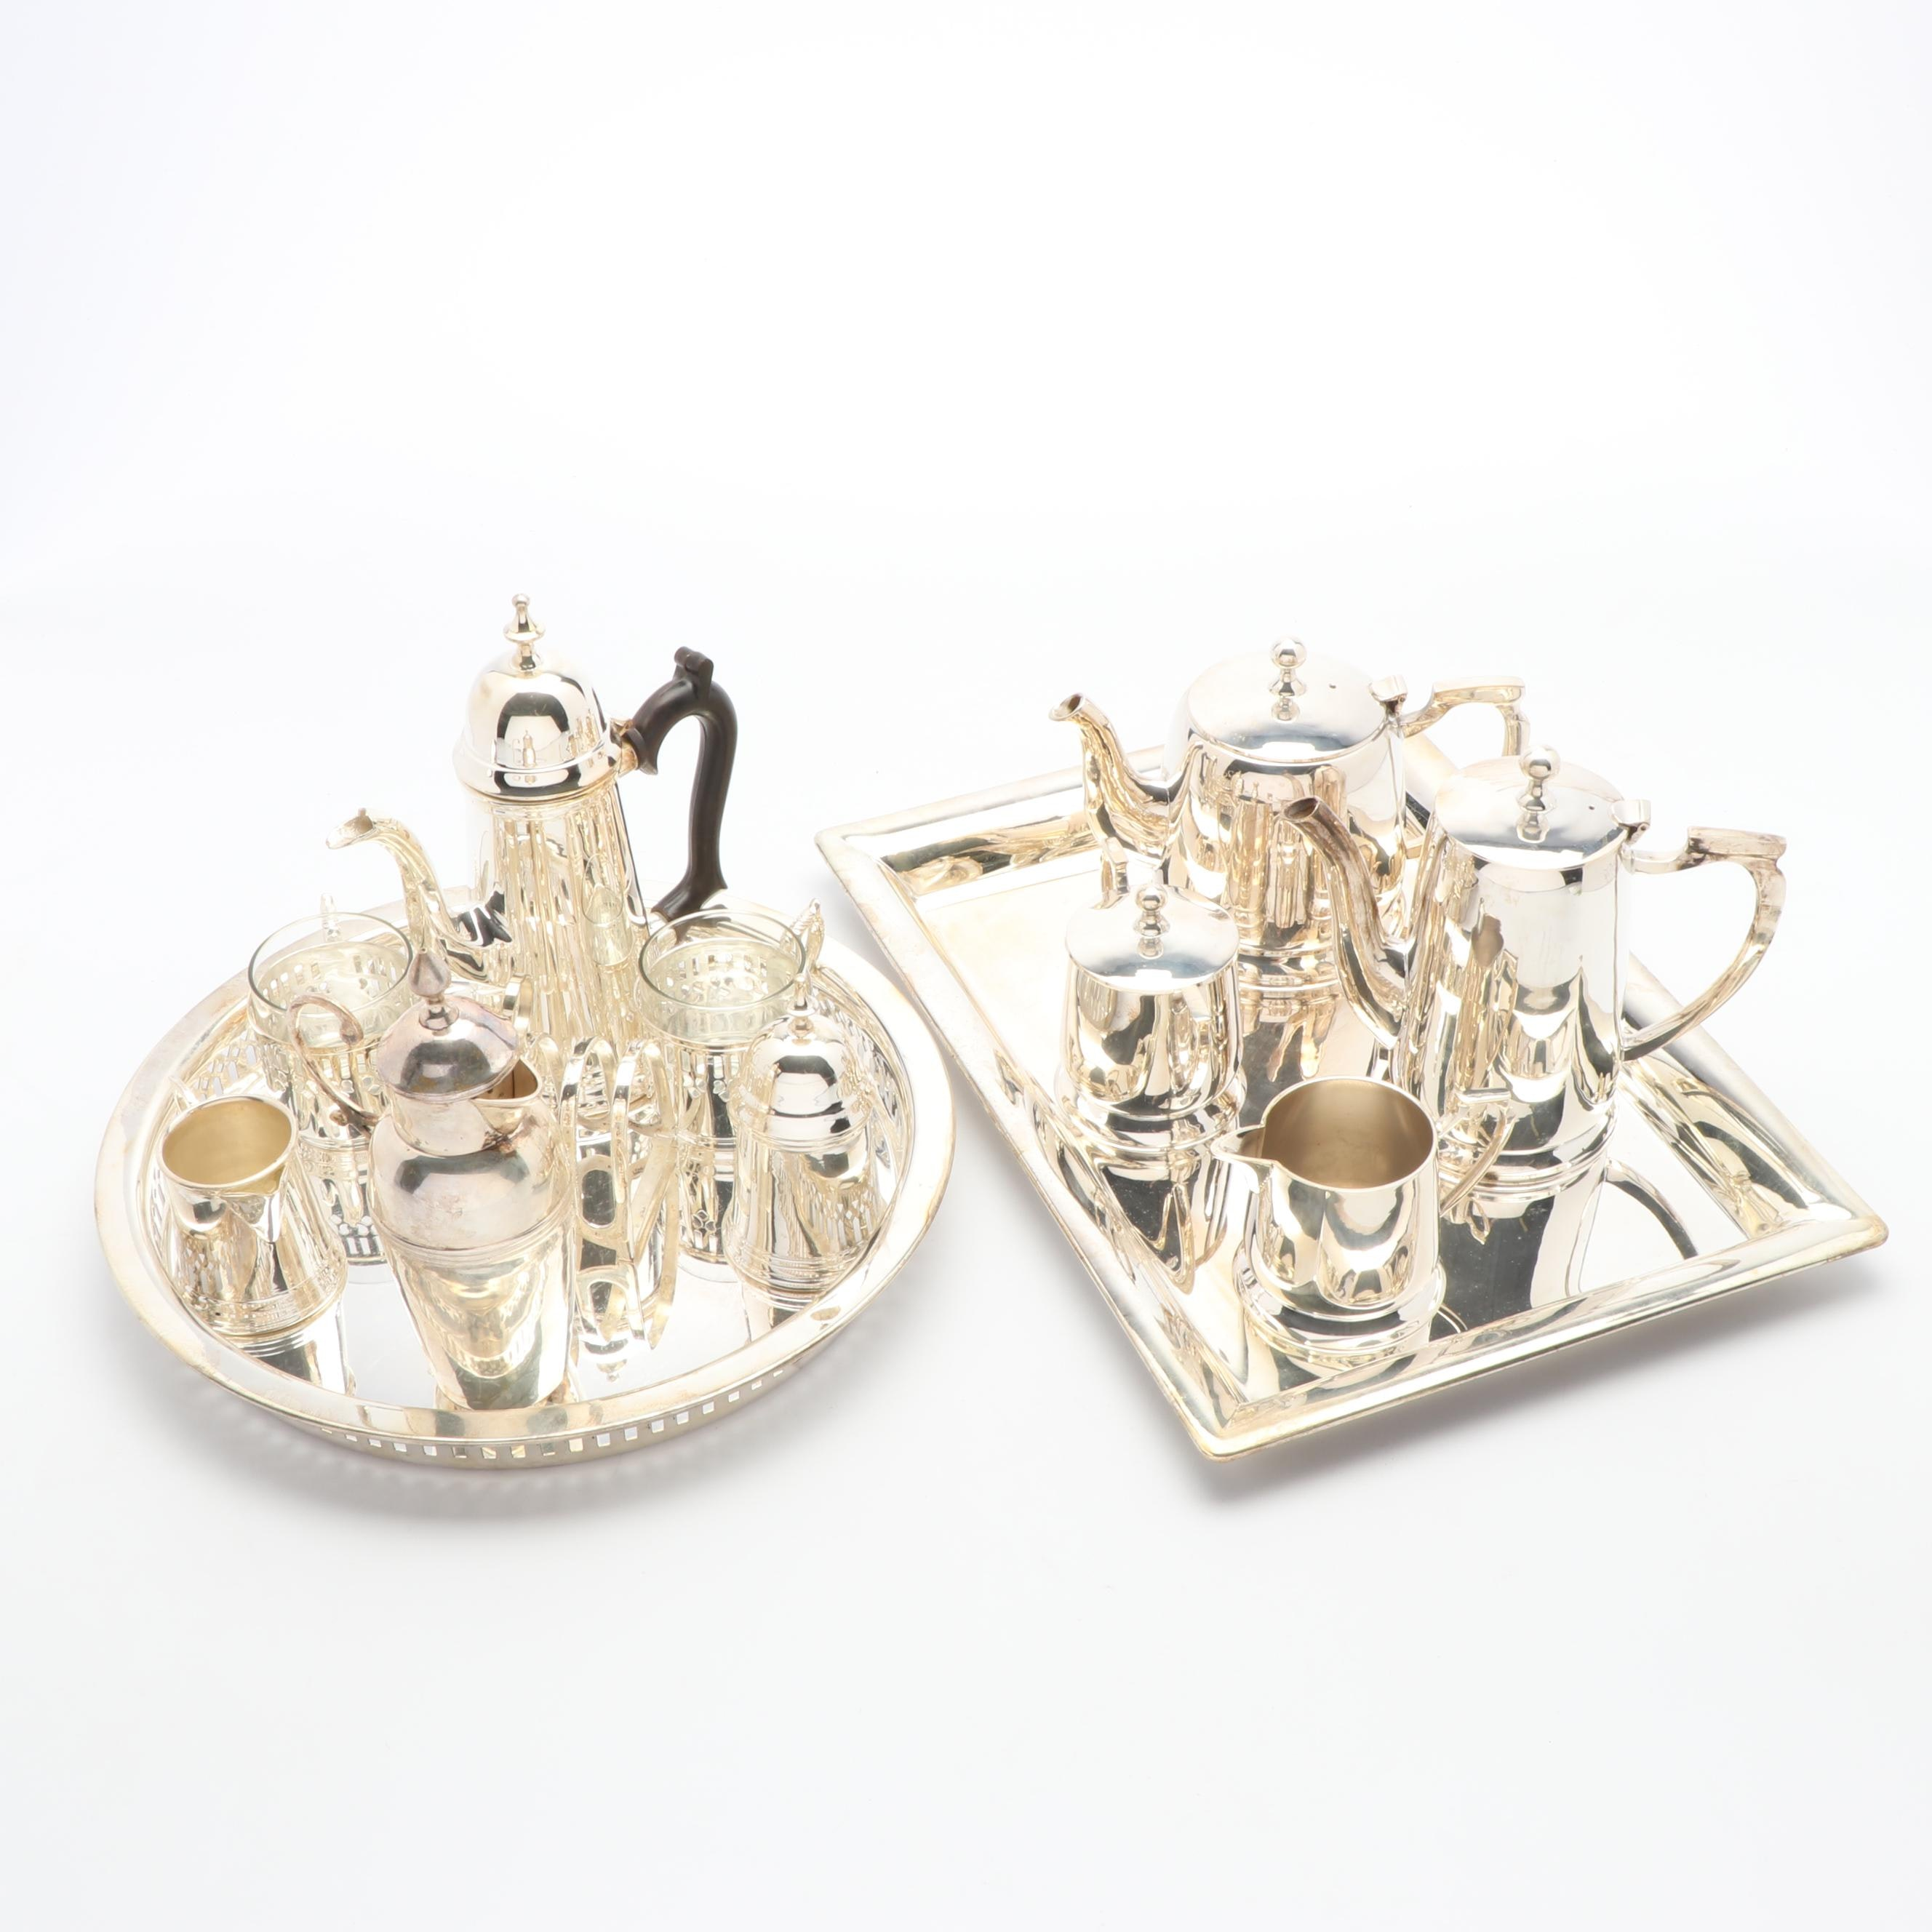 Silver Plate Tea Set with Godinger Tray, International Coffee Pot, and More